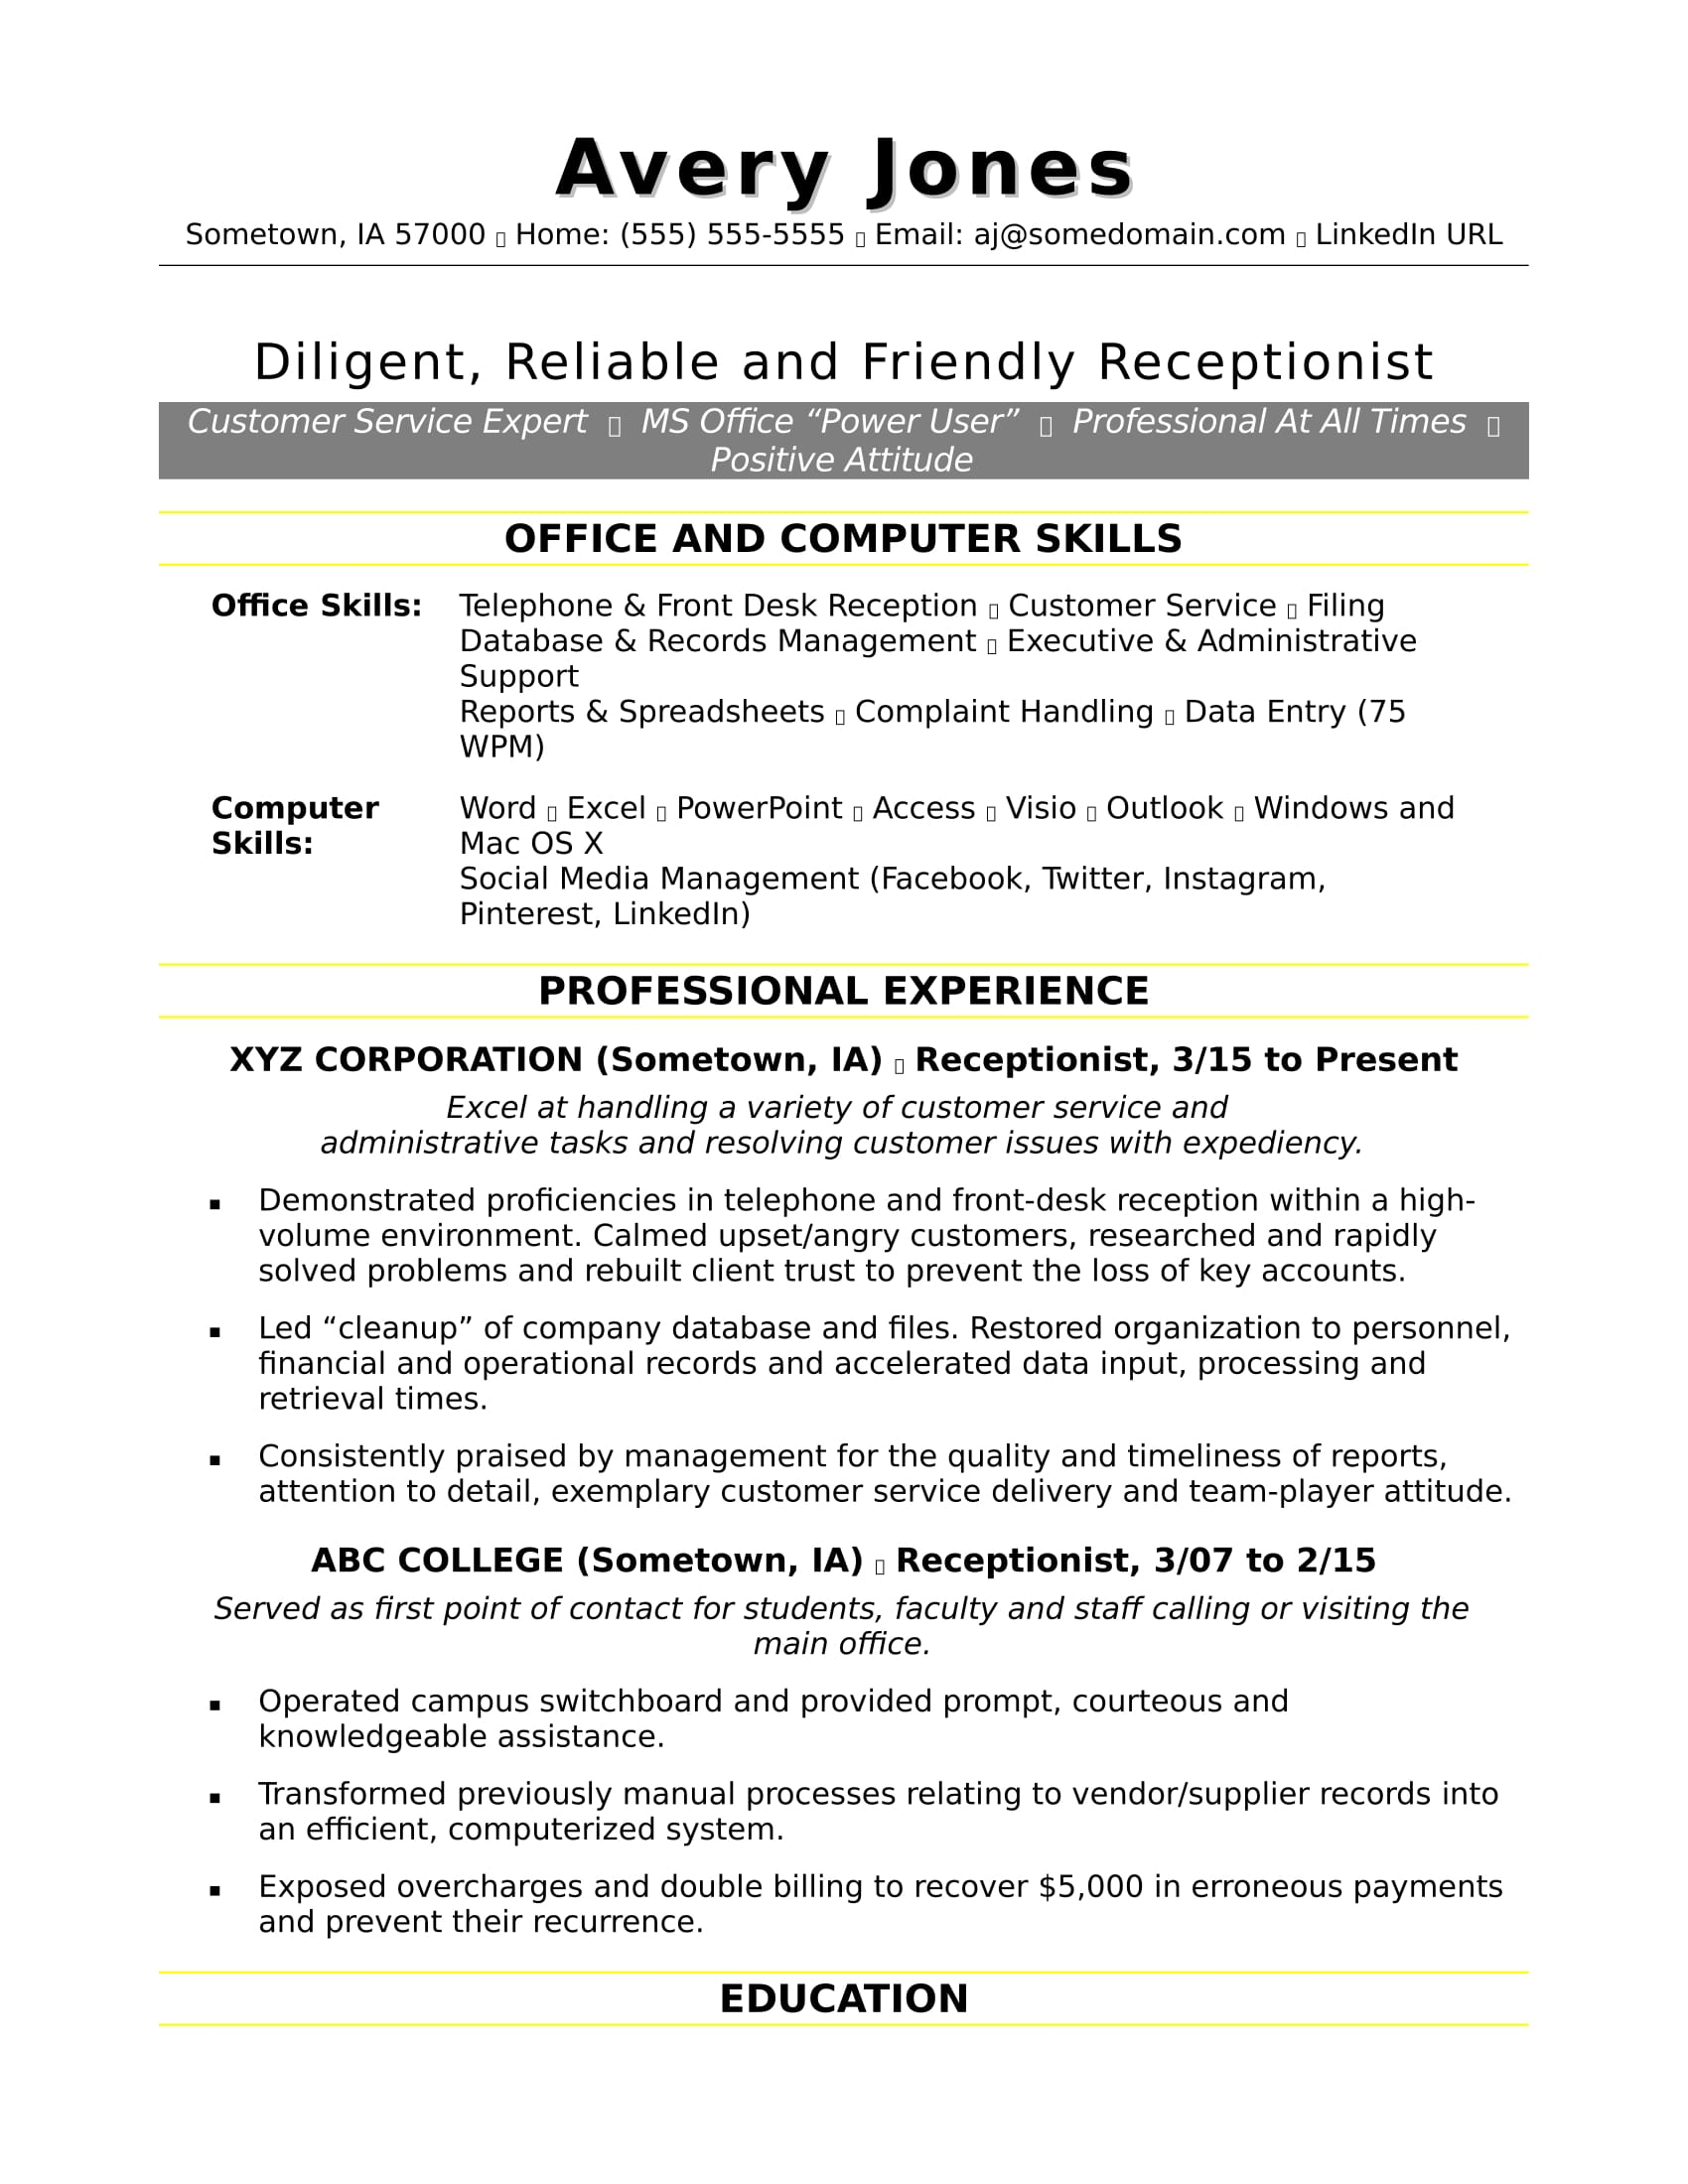 Sample Resume For A Receptionist  Words To Put On Resume